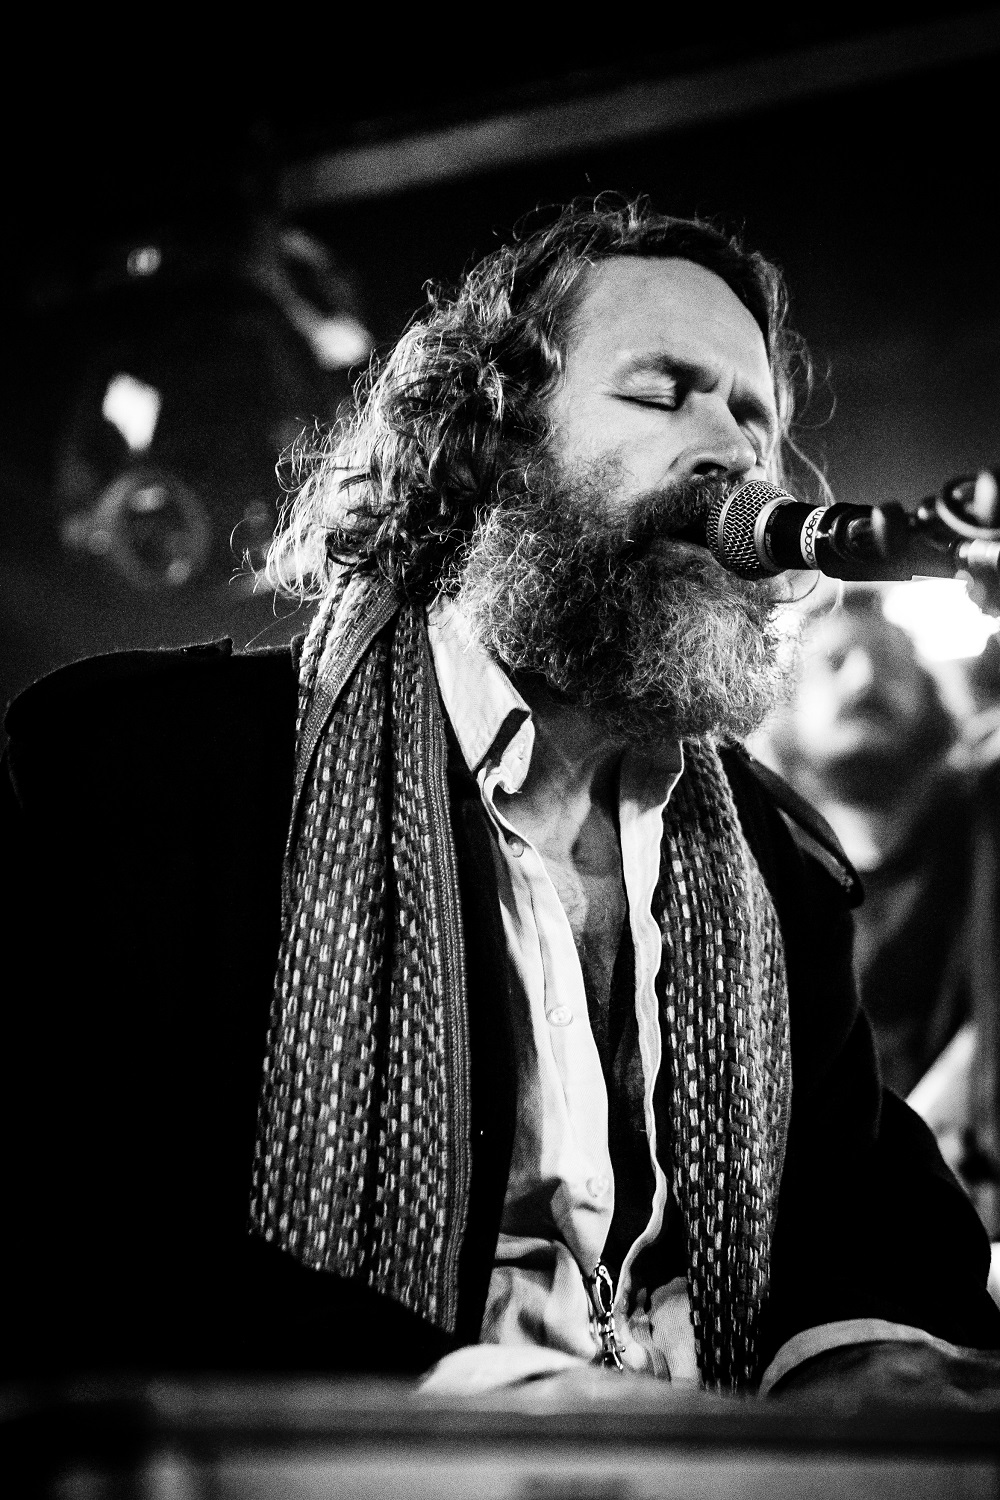 hothouse flowers (Liam O'Maonlai) 2 (1 of 1).jpg